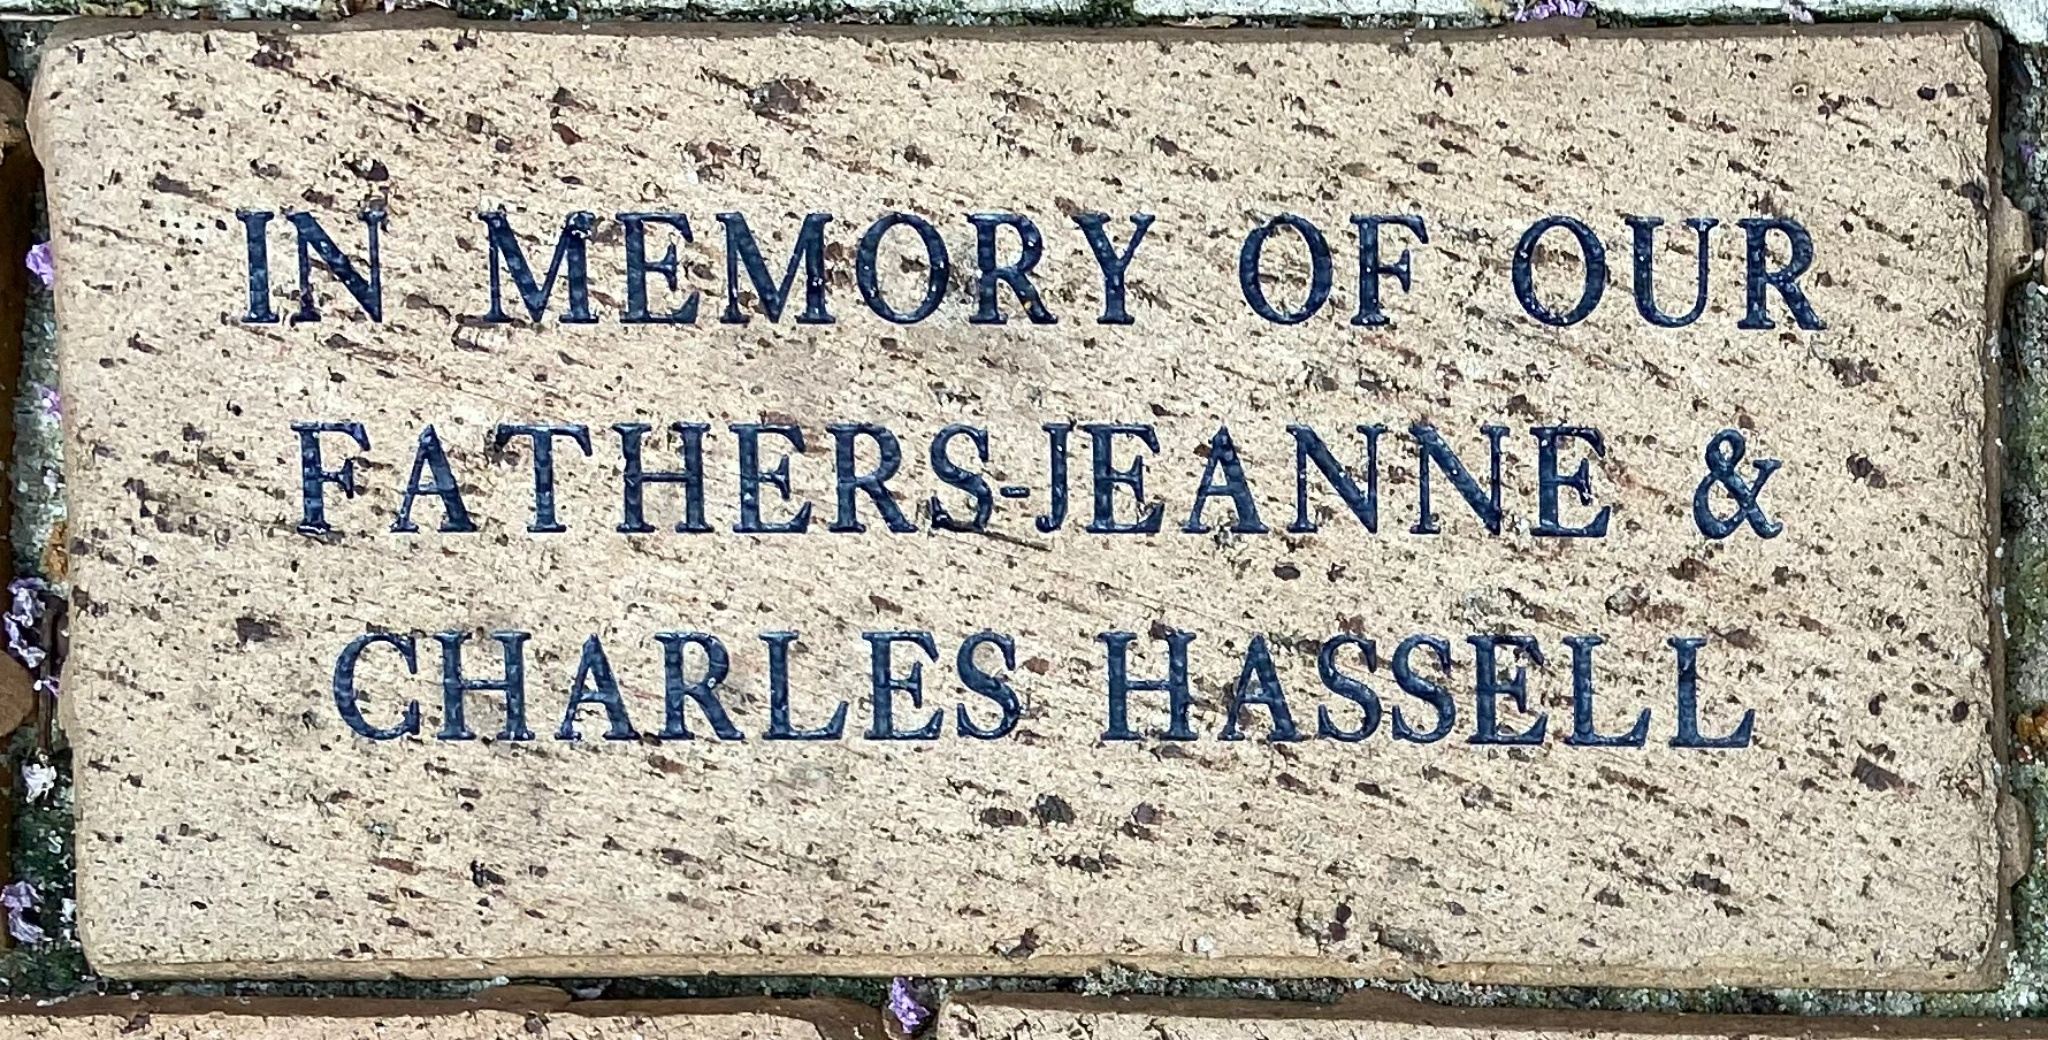 IN MEMORY OF OUR FATHERS – JEANNE & CHARLES HASSELL